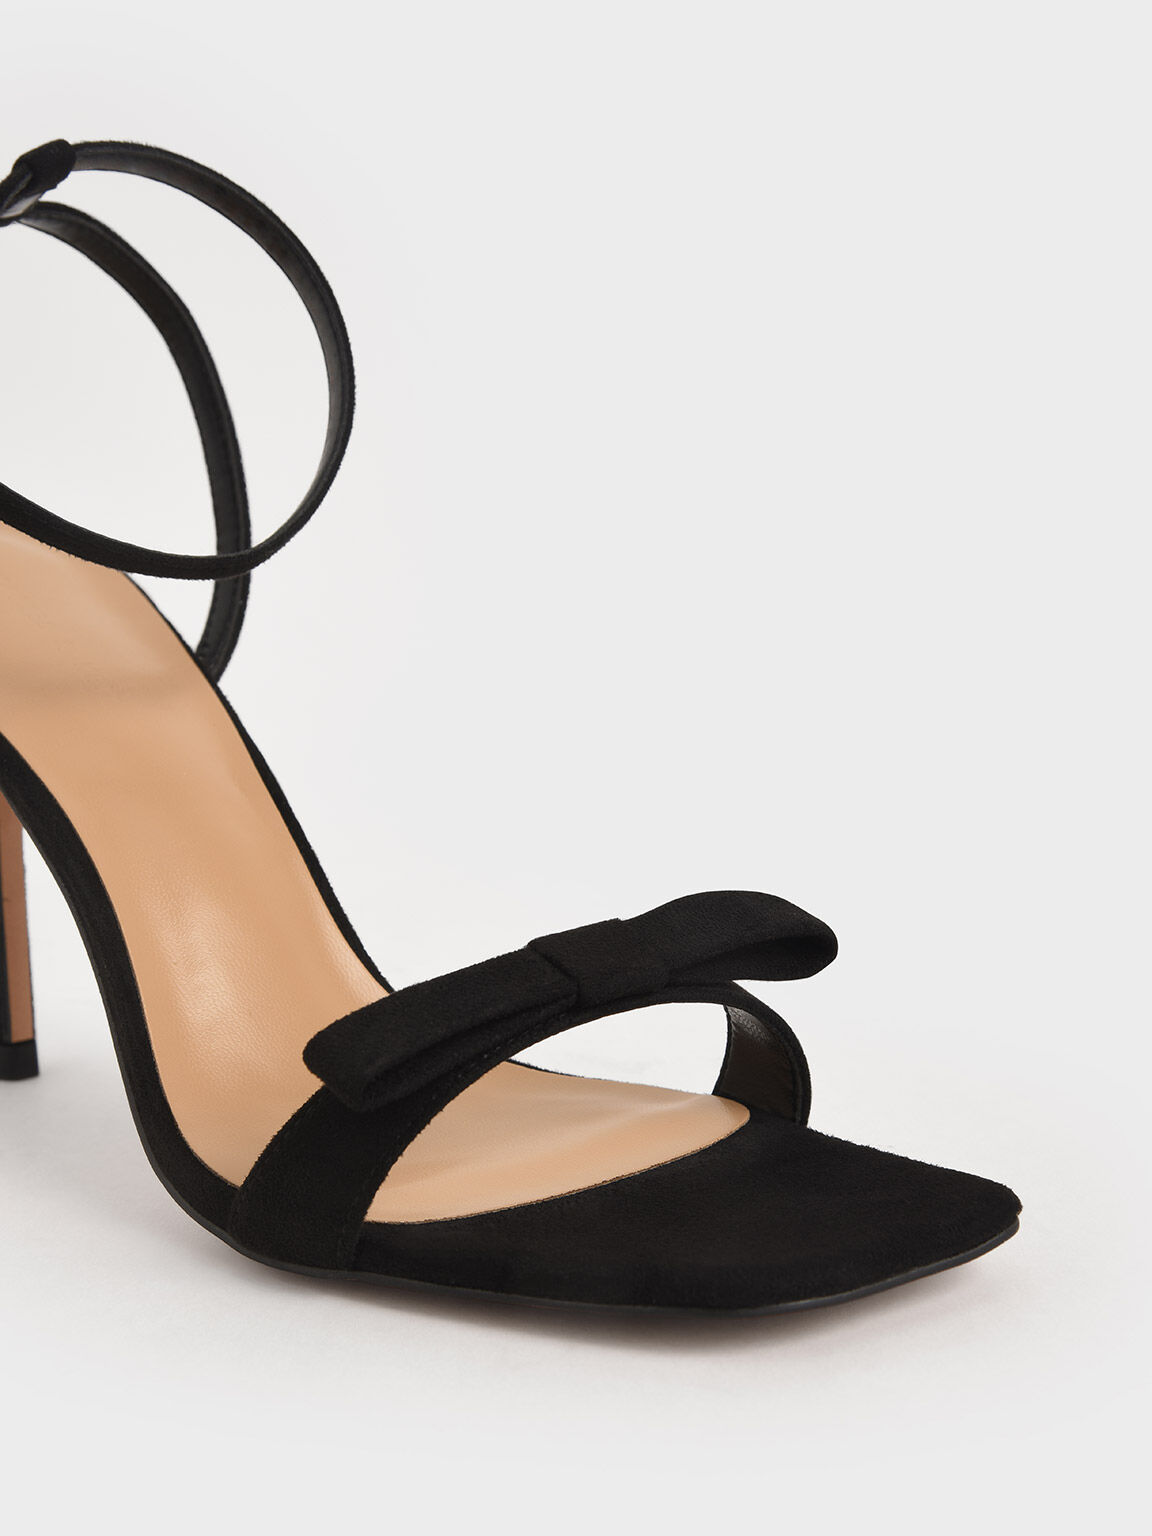 Textured Bow Ankle Strap Sandals, Black, hi-res